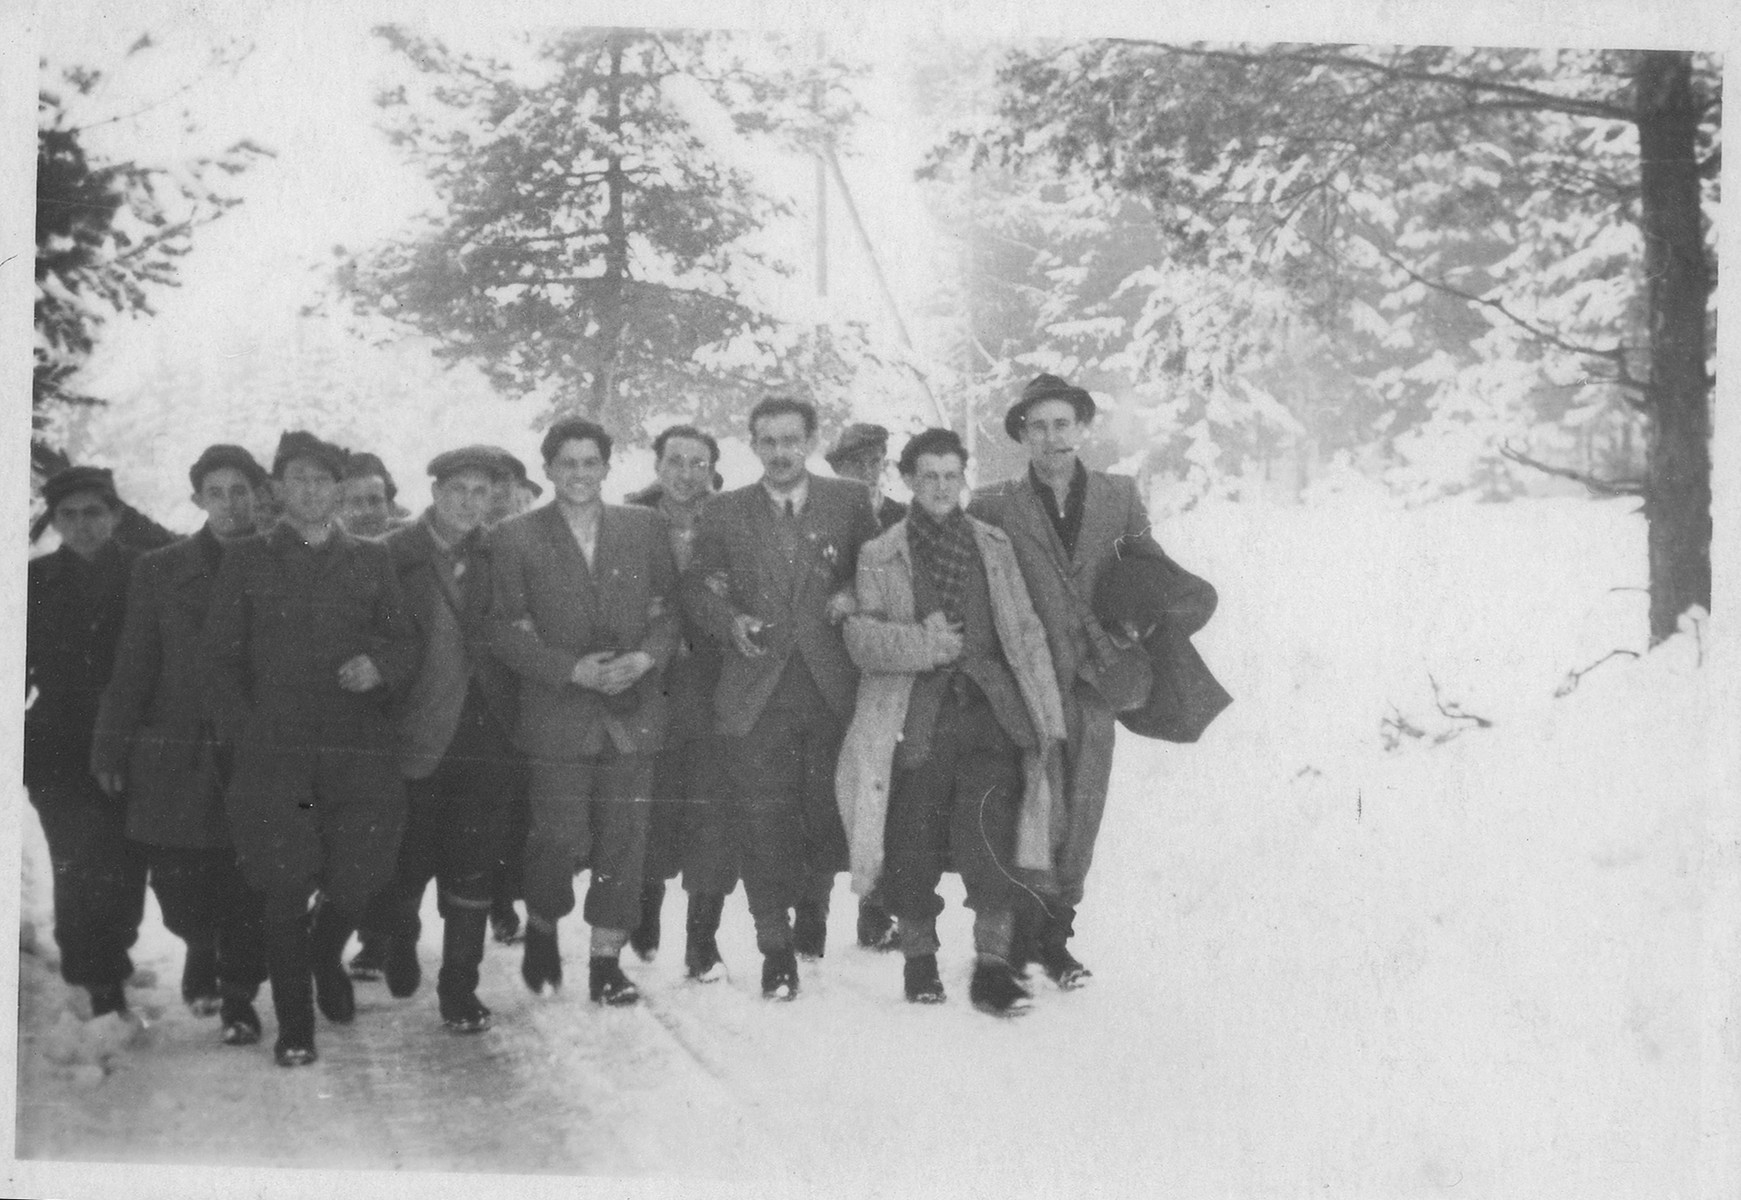 Shmuel Willenberg (third from right) leads a group of Jews across the Alps on their eventual way to Palestine.